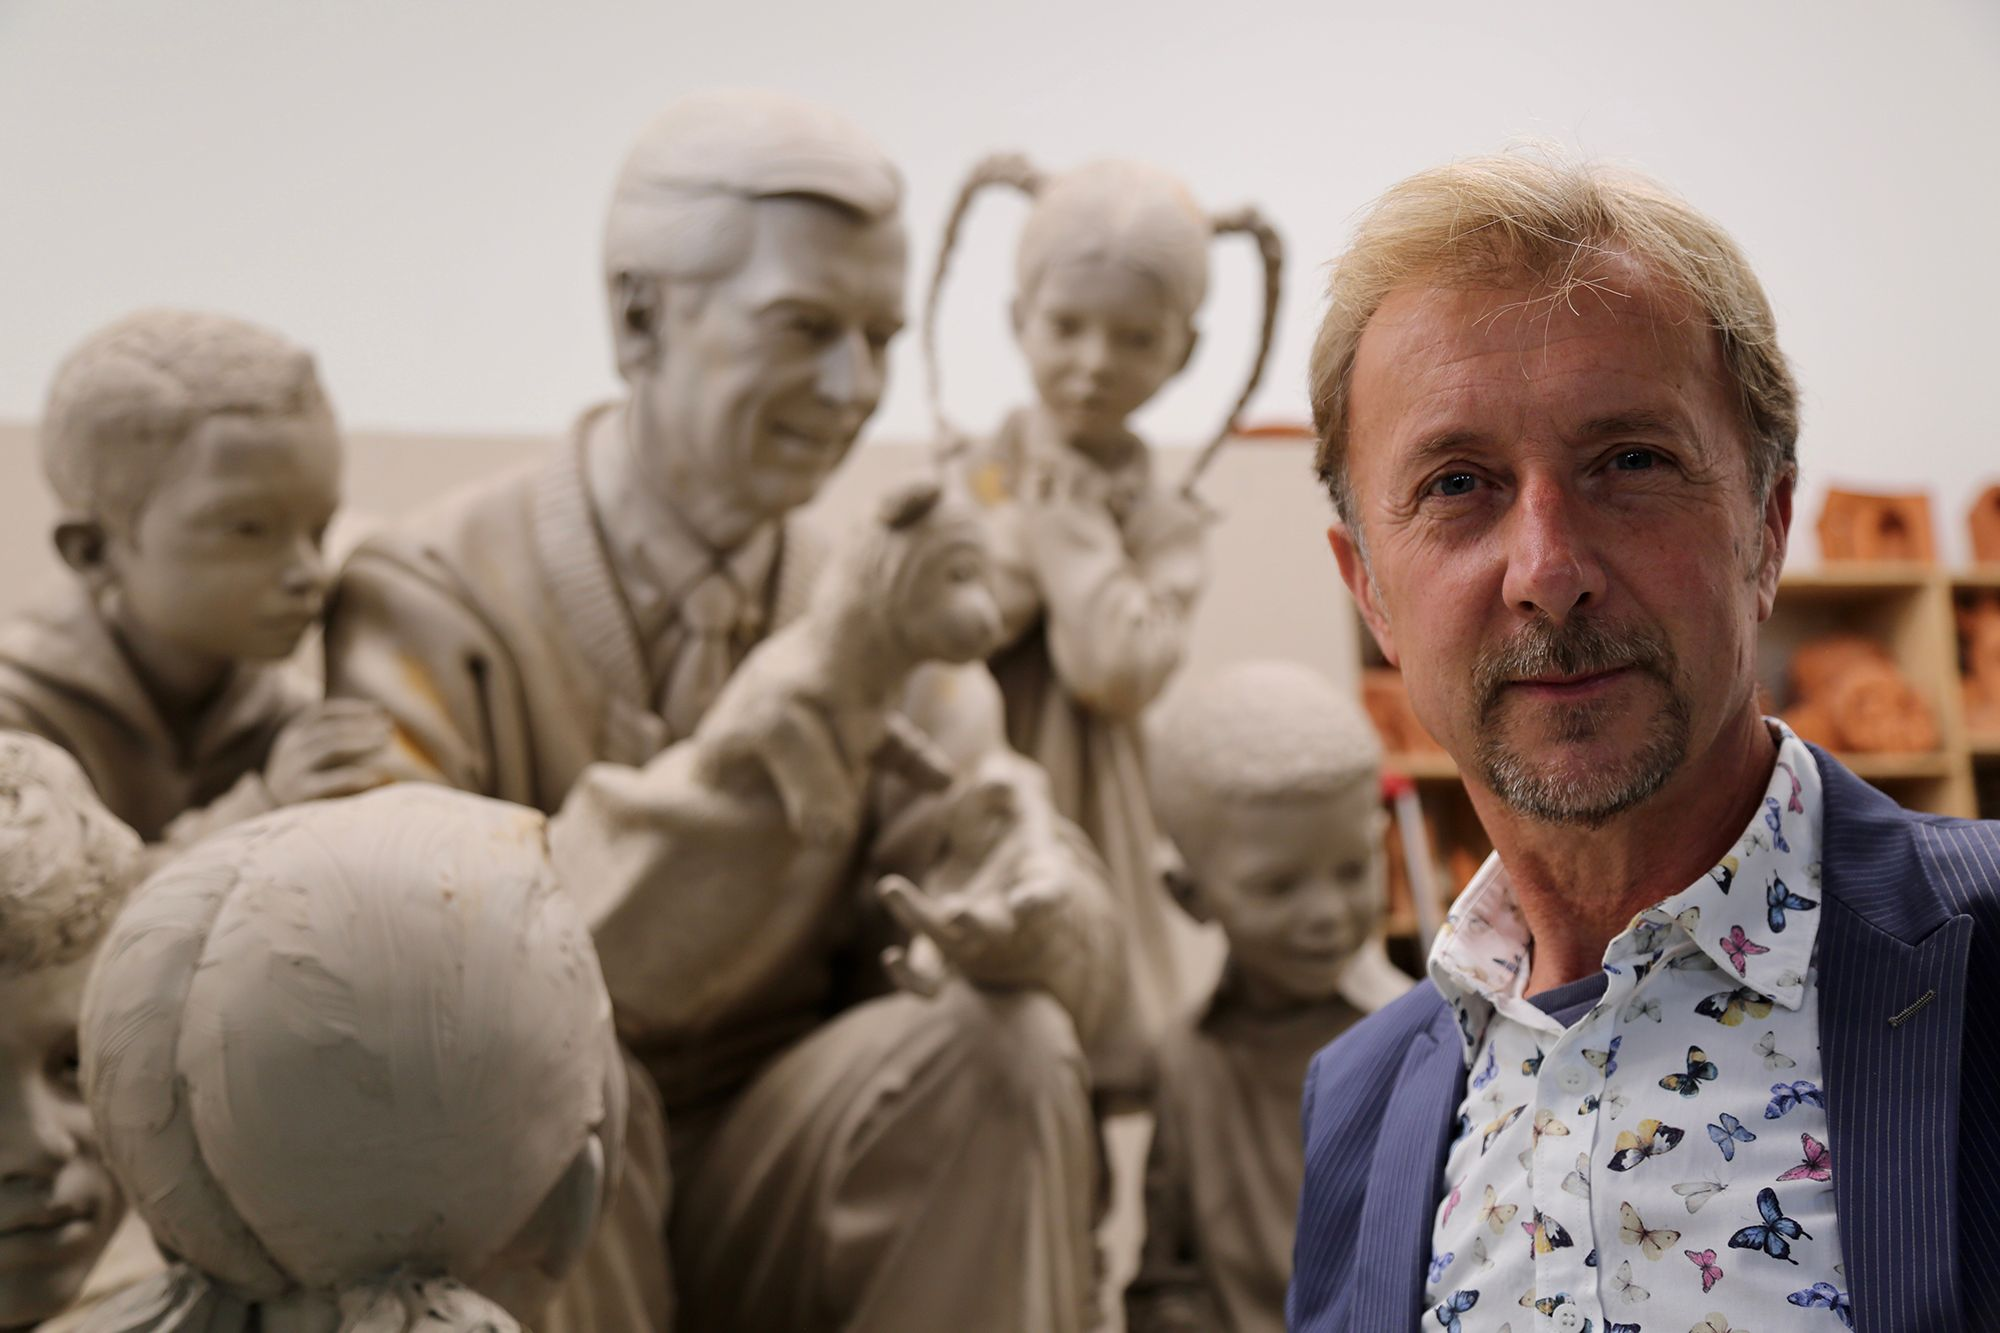 Renowned artist Paul Day pictured with the sculpture he's creating of Mister Rogers, Rollins College's most beloved alumnus.